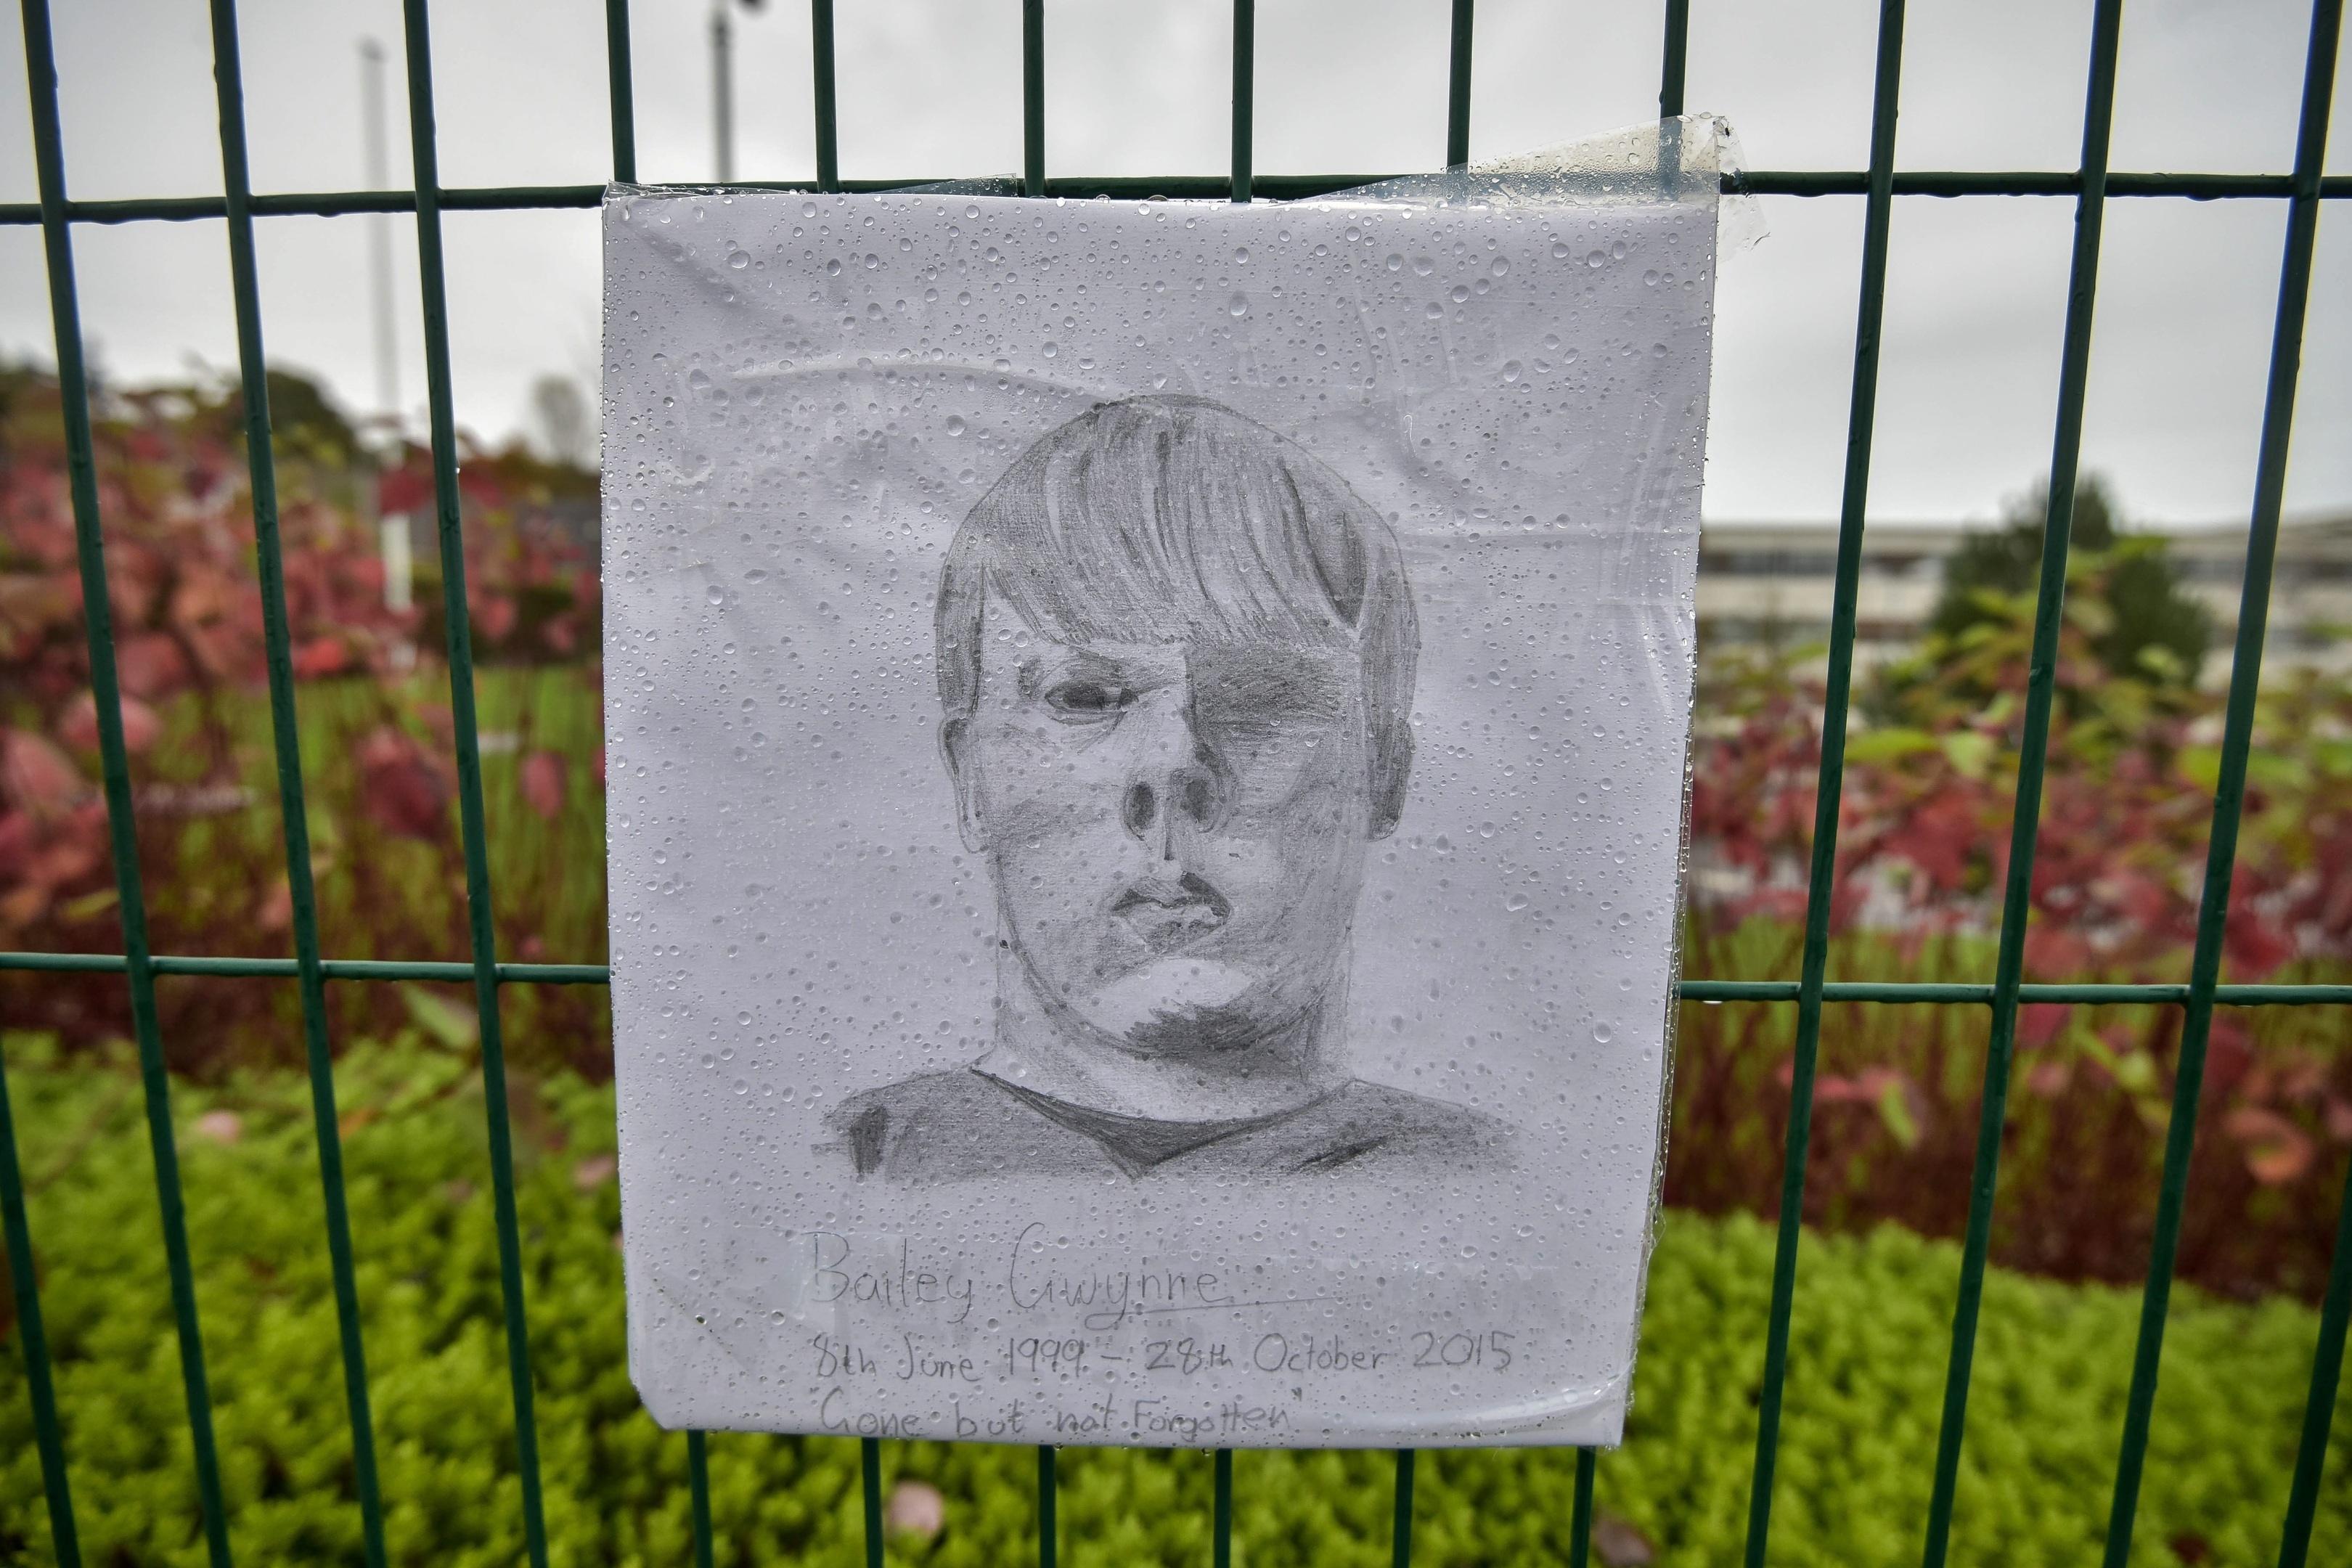 One pupil has sketched Bailey and added the picture to the tributes